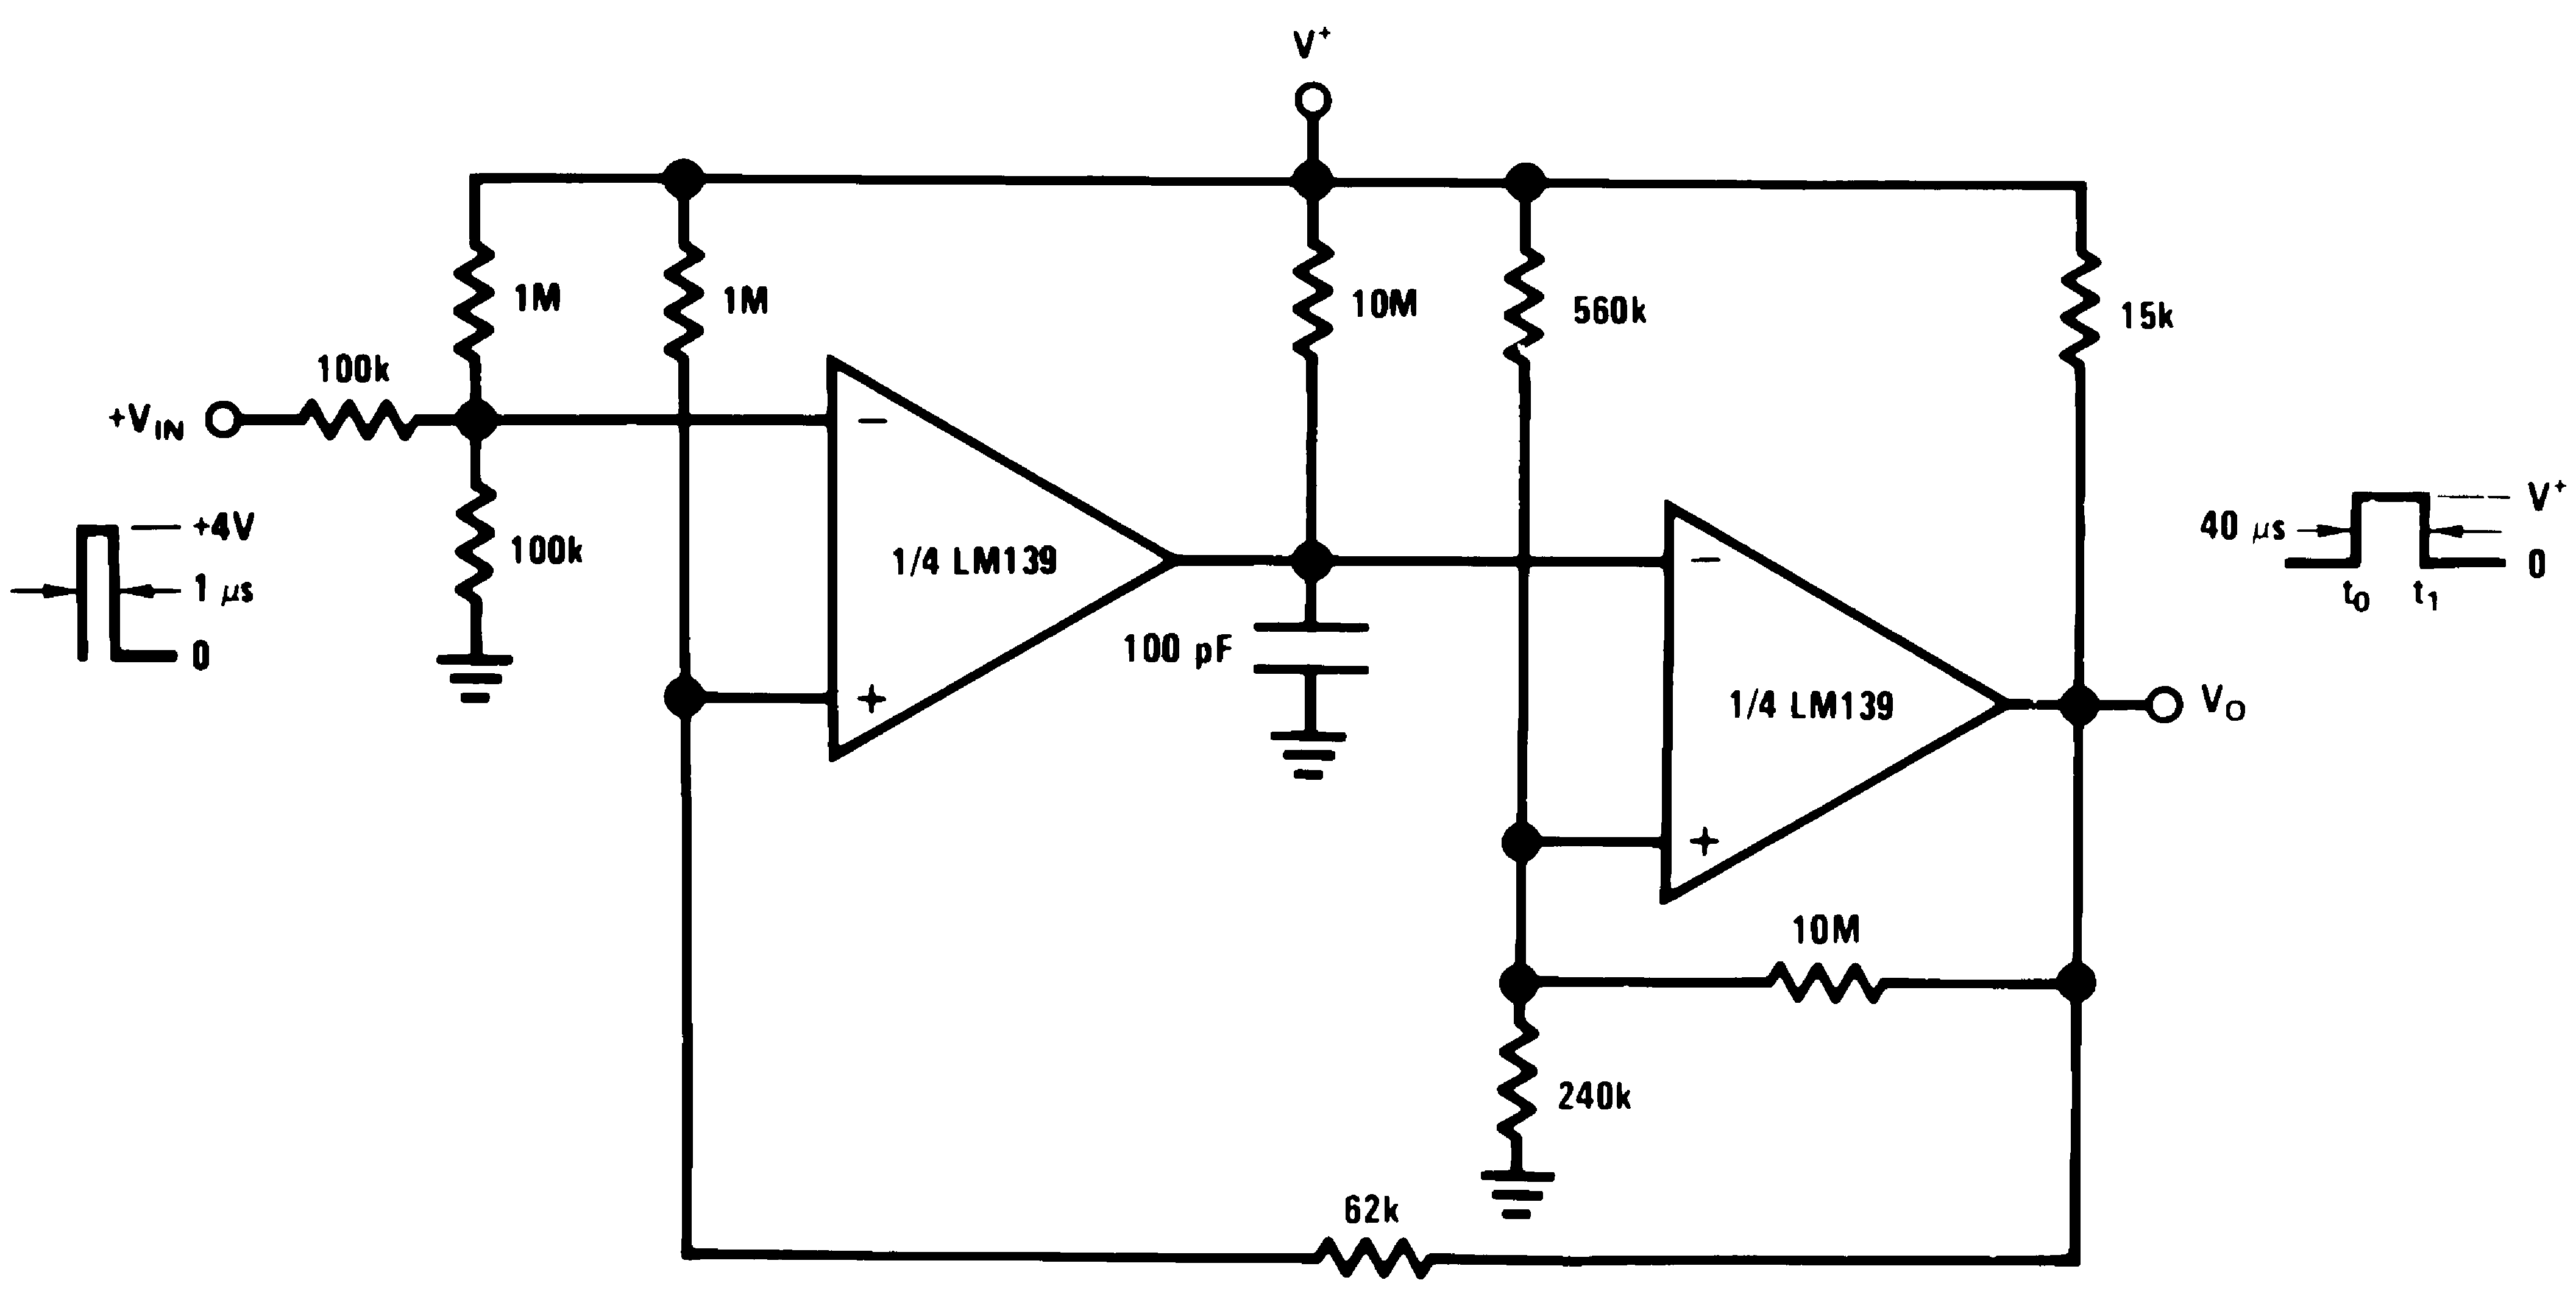 Lm239 N Often Called A One Shot Multivibrator Is Pulse Generating Circuit 00570612